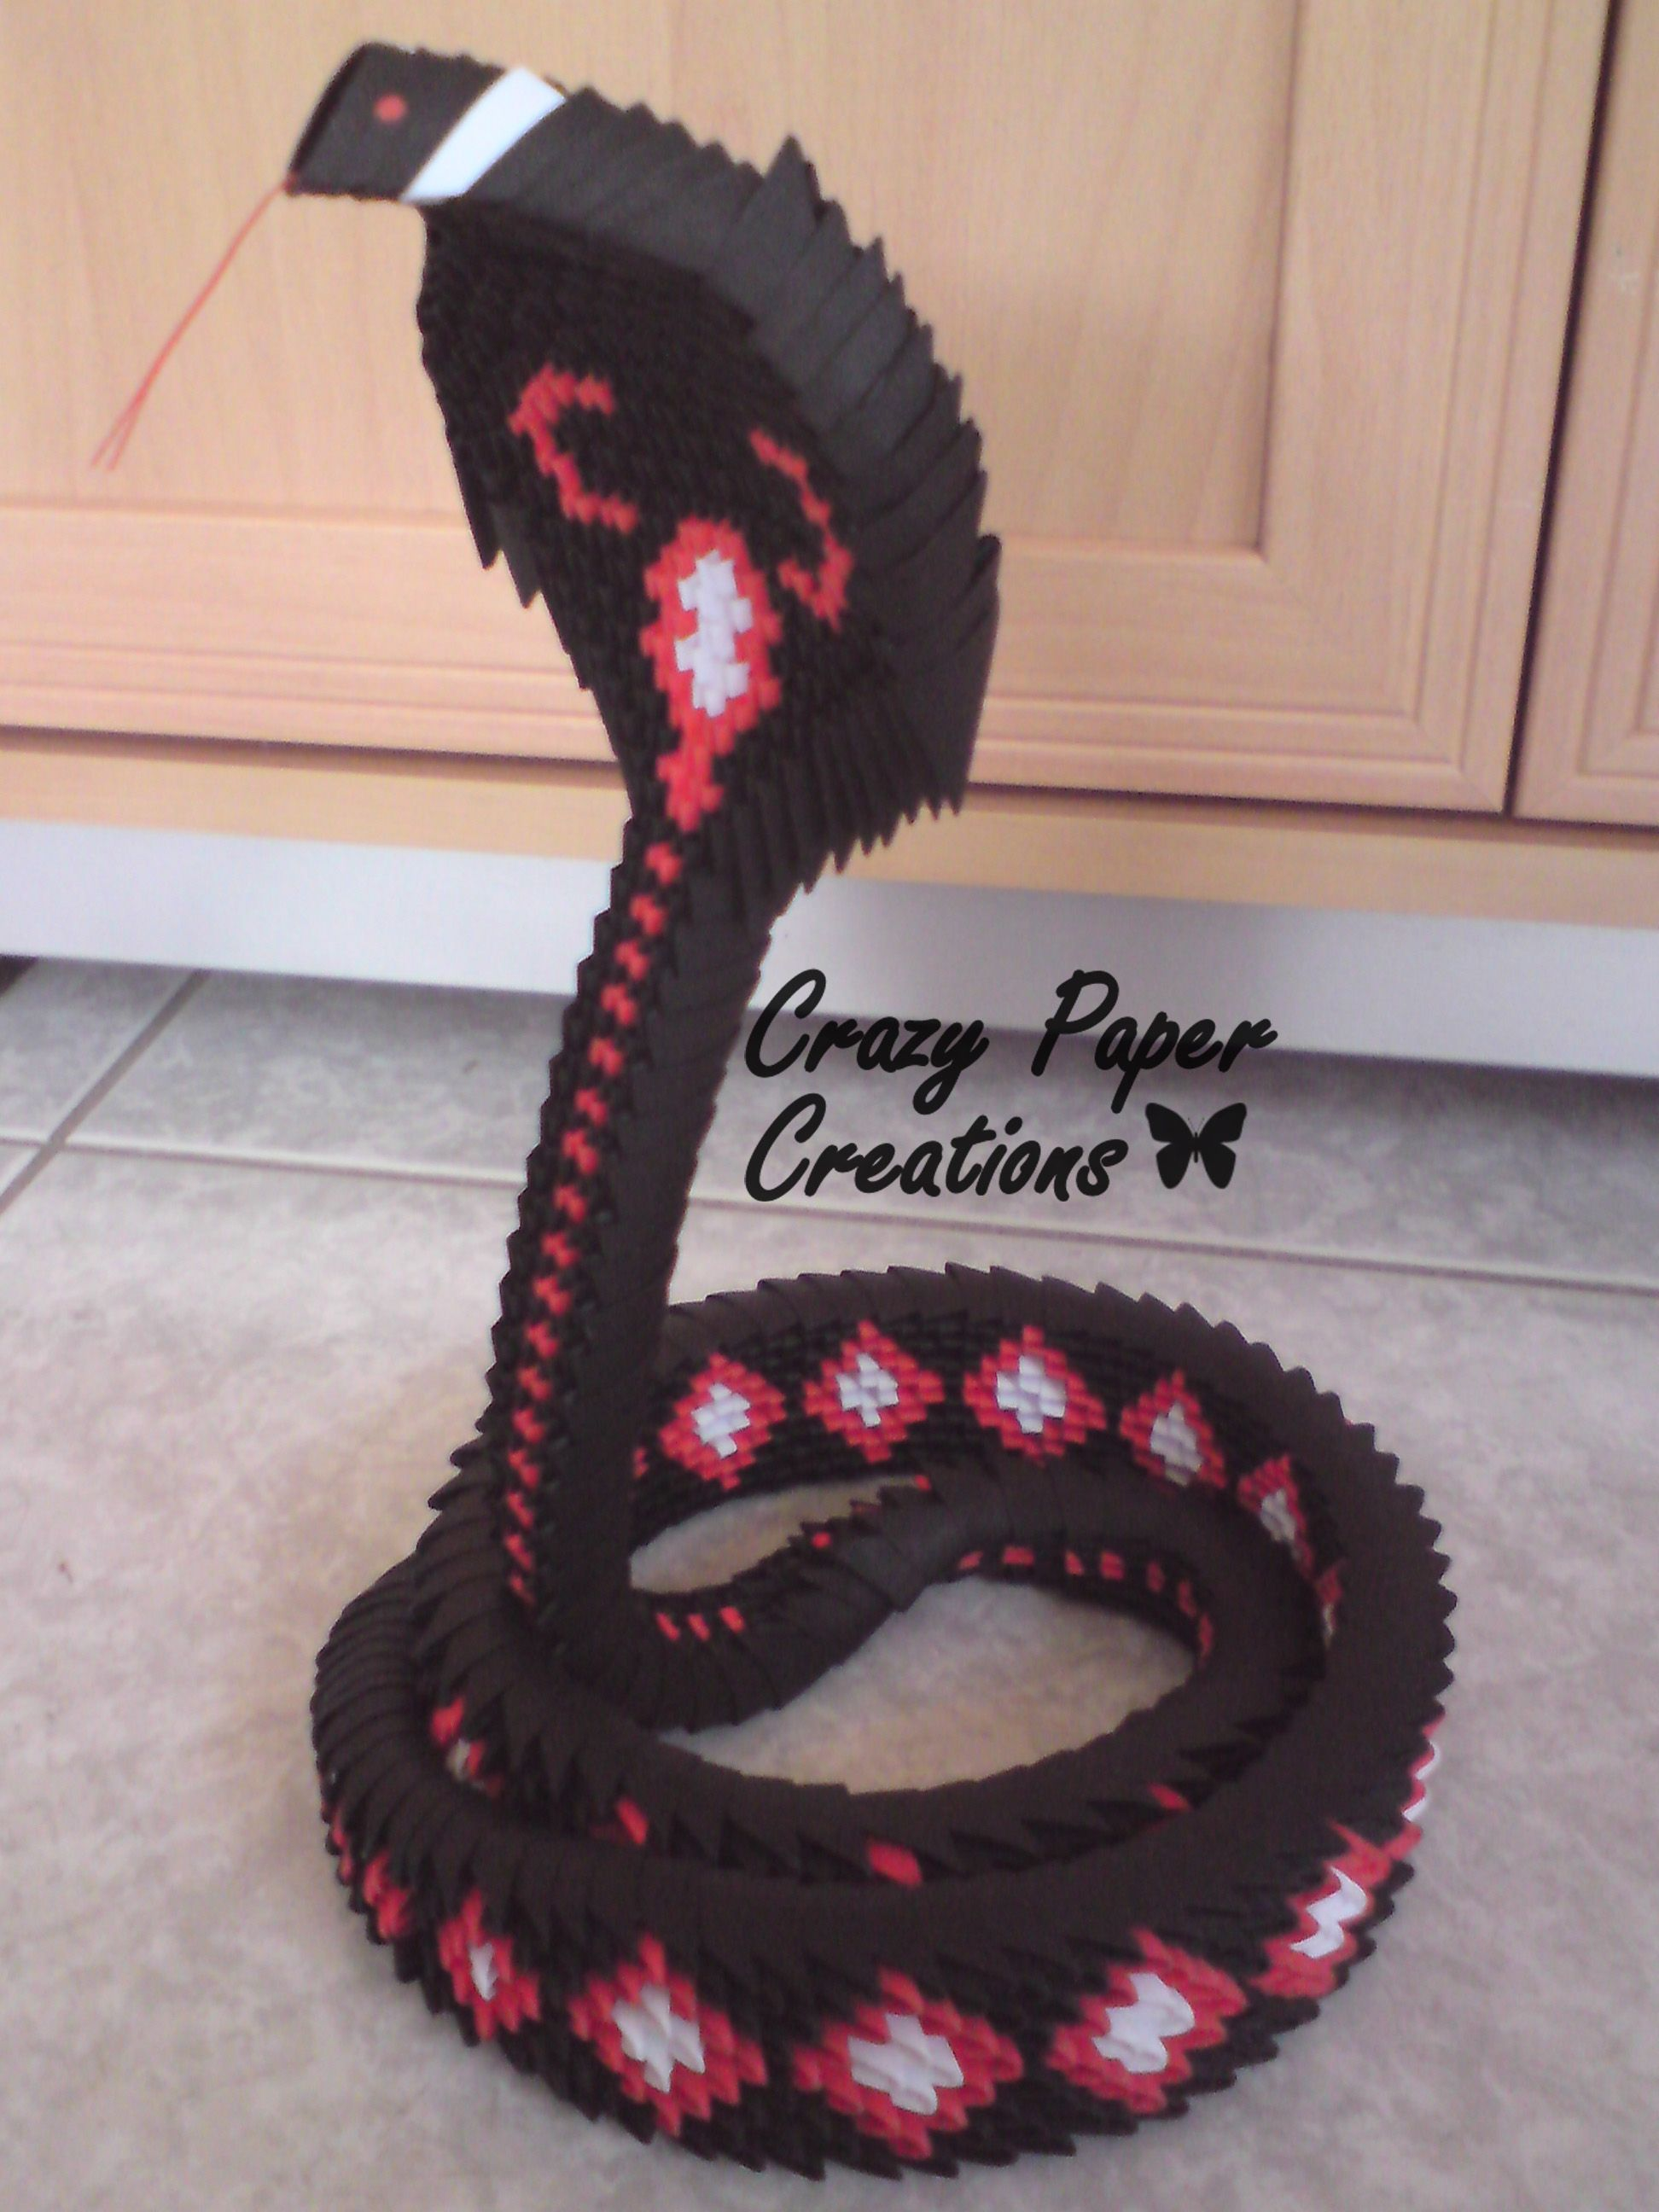 Pin By Gabriella Toth On 3d Origami Pinterest Swan Diagram Cobra Snake 1100 Pieces Https Facebookcom